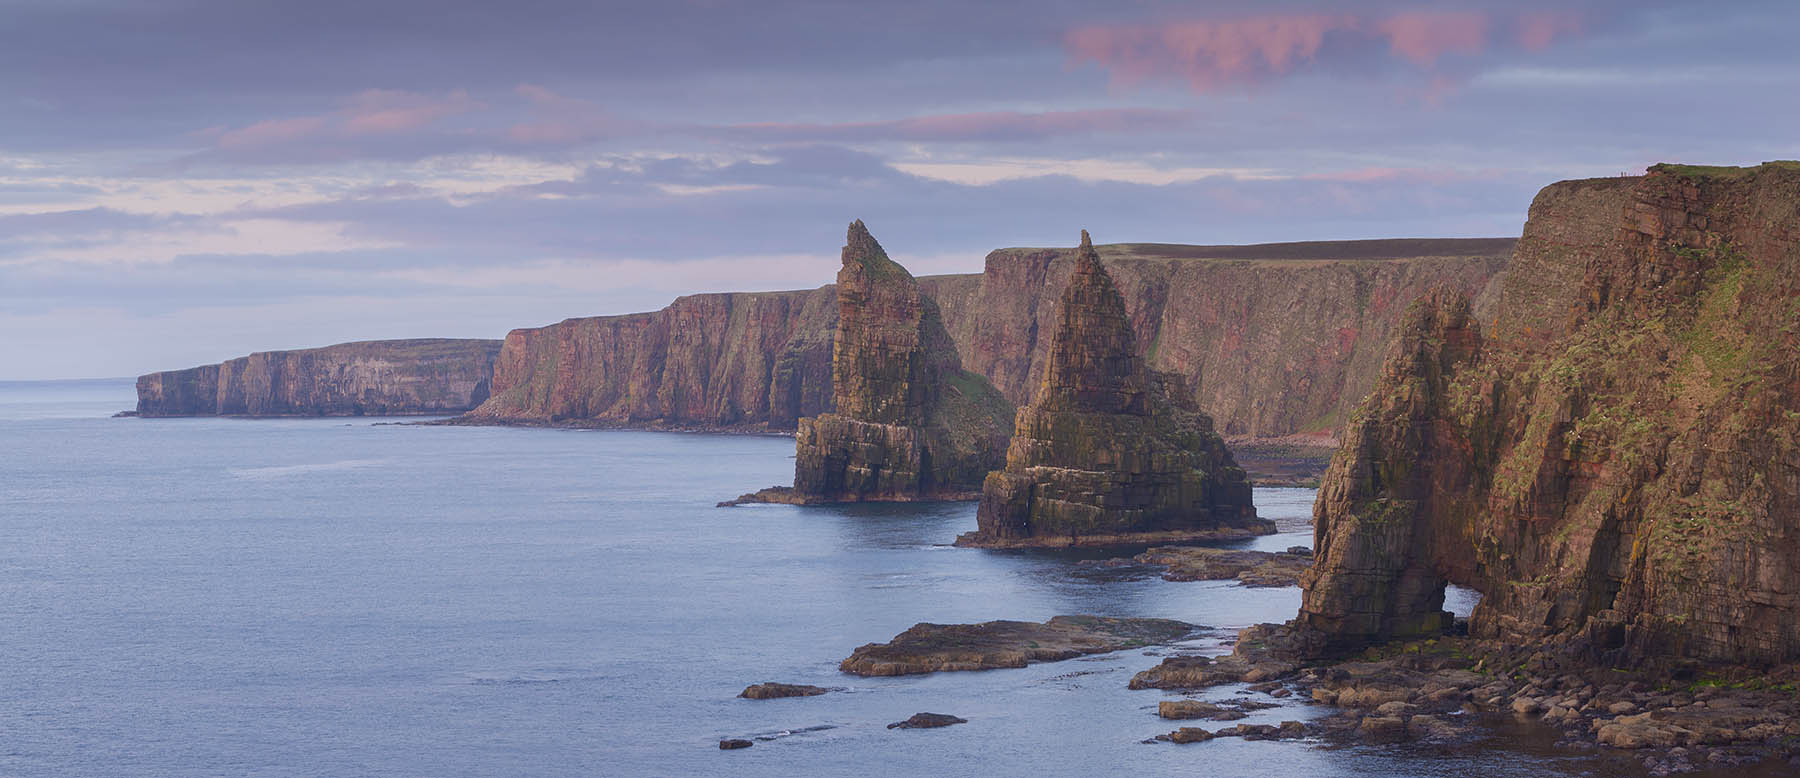 Duncasby stacks NC500